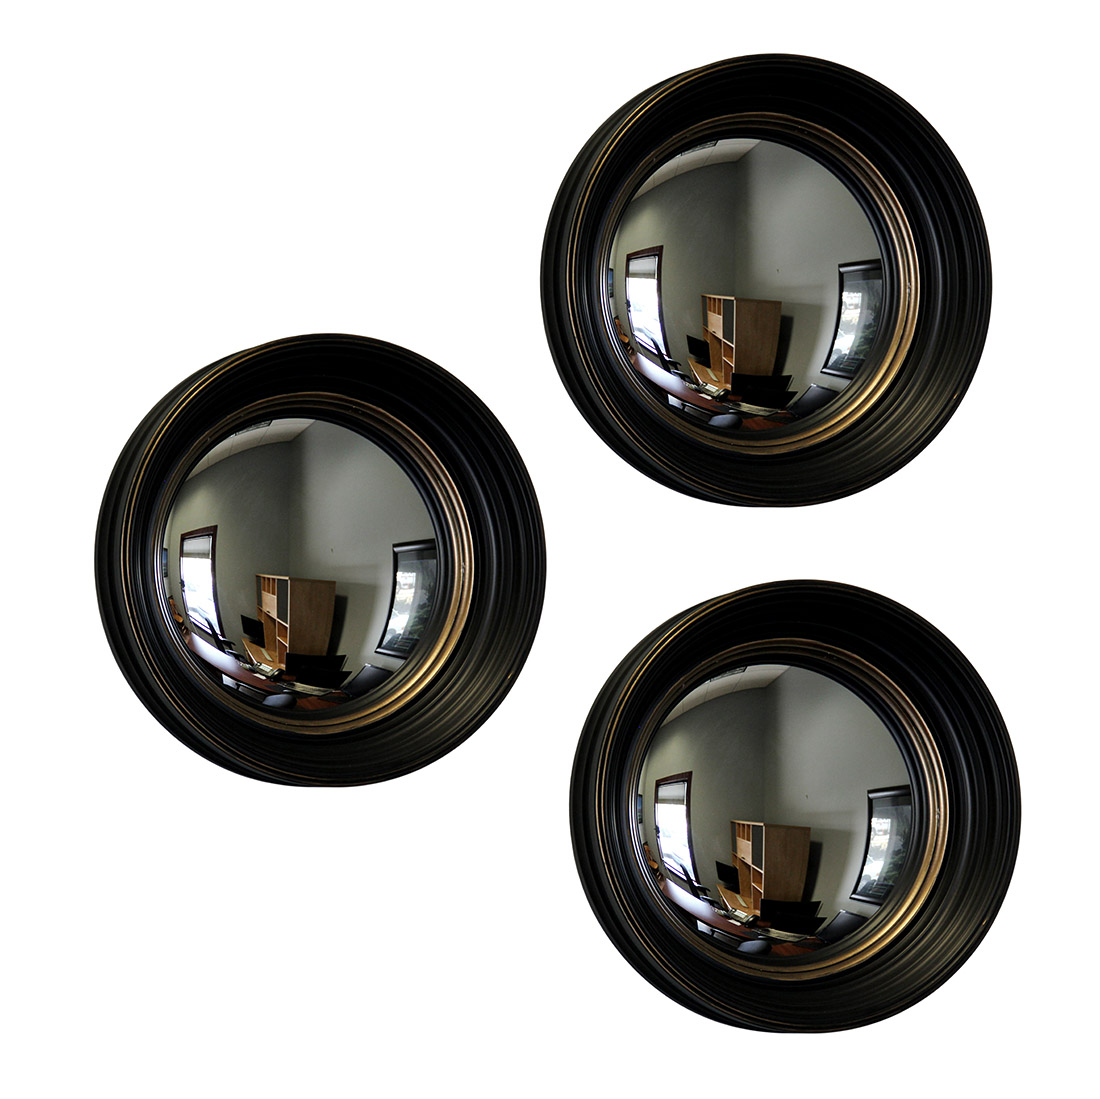 Set of wall mirrors images home wall decoration ideas set of wall mirrors image collections home wall decoration ideas set of wall mirrors images home amipublicfo Choice Image